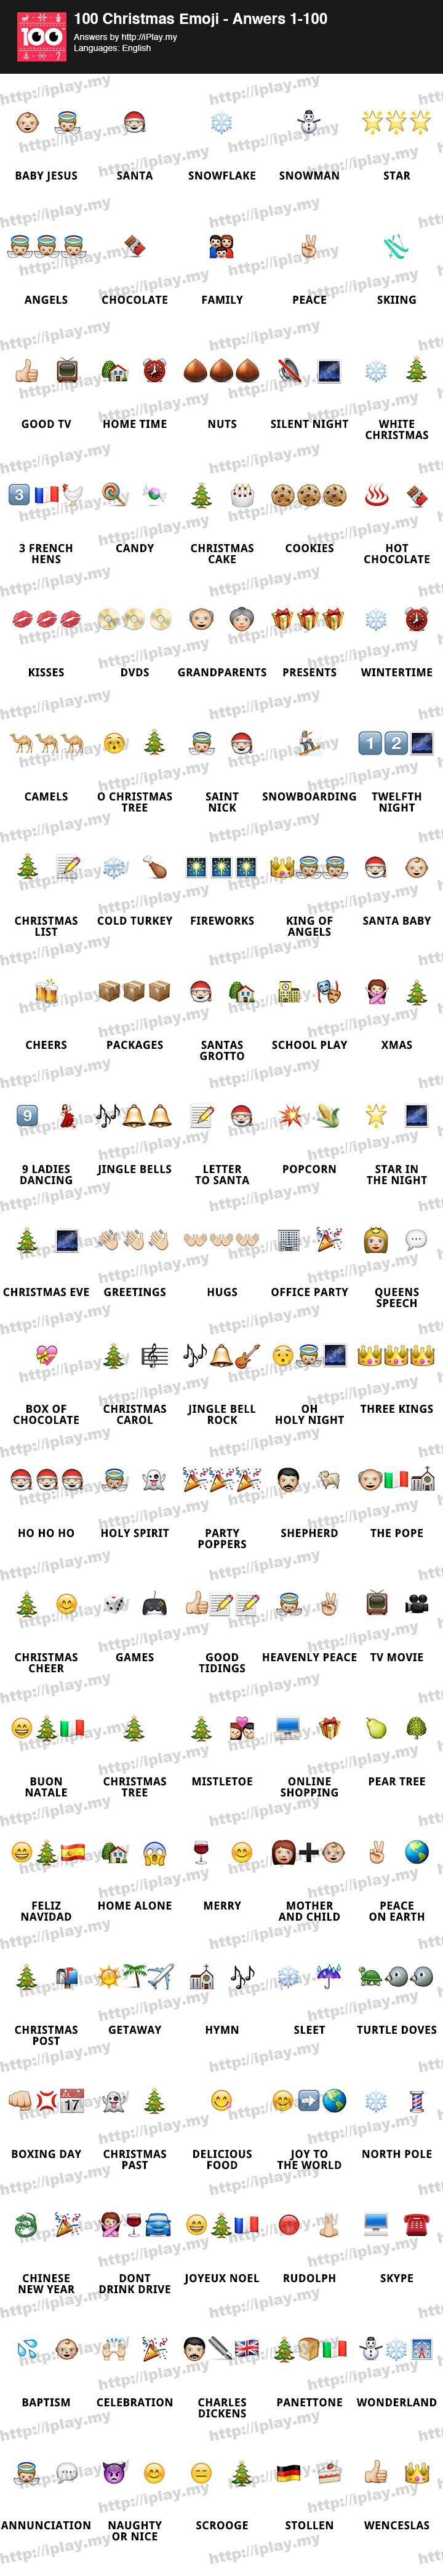 100 Christmas Emoji Answers | iPlay.my